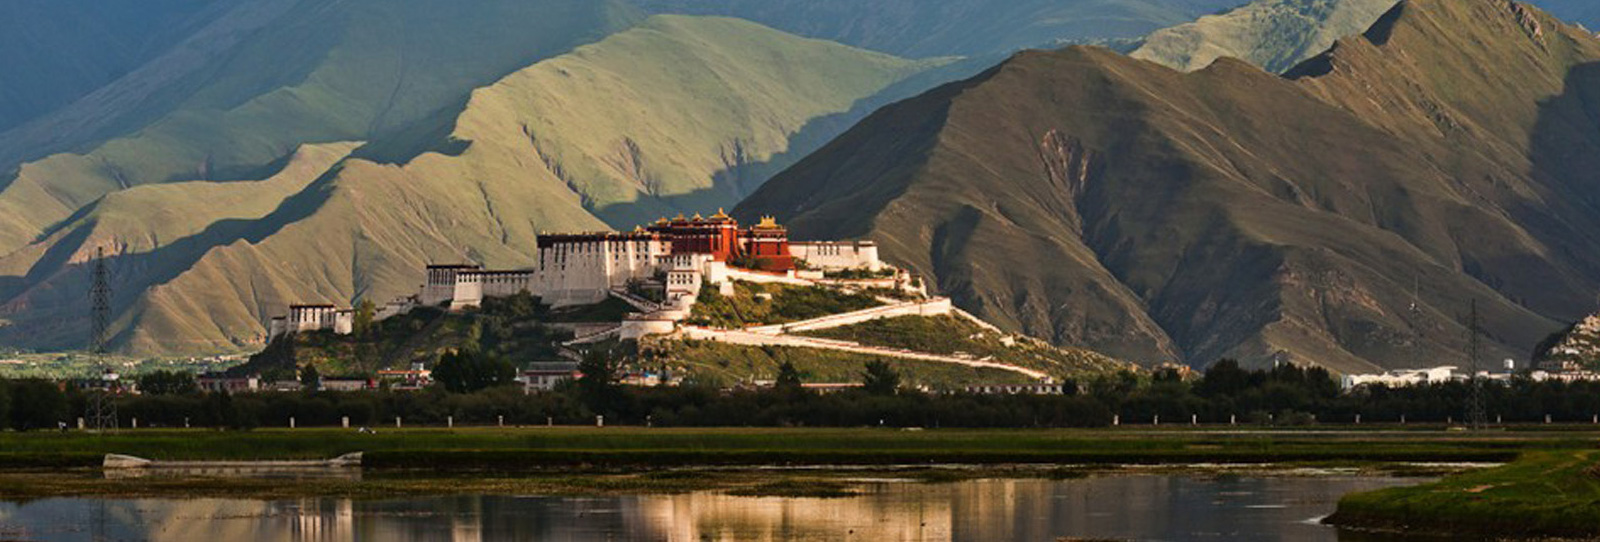 Tibet Entry Procedure